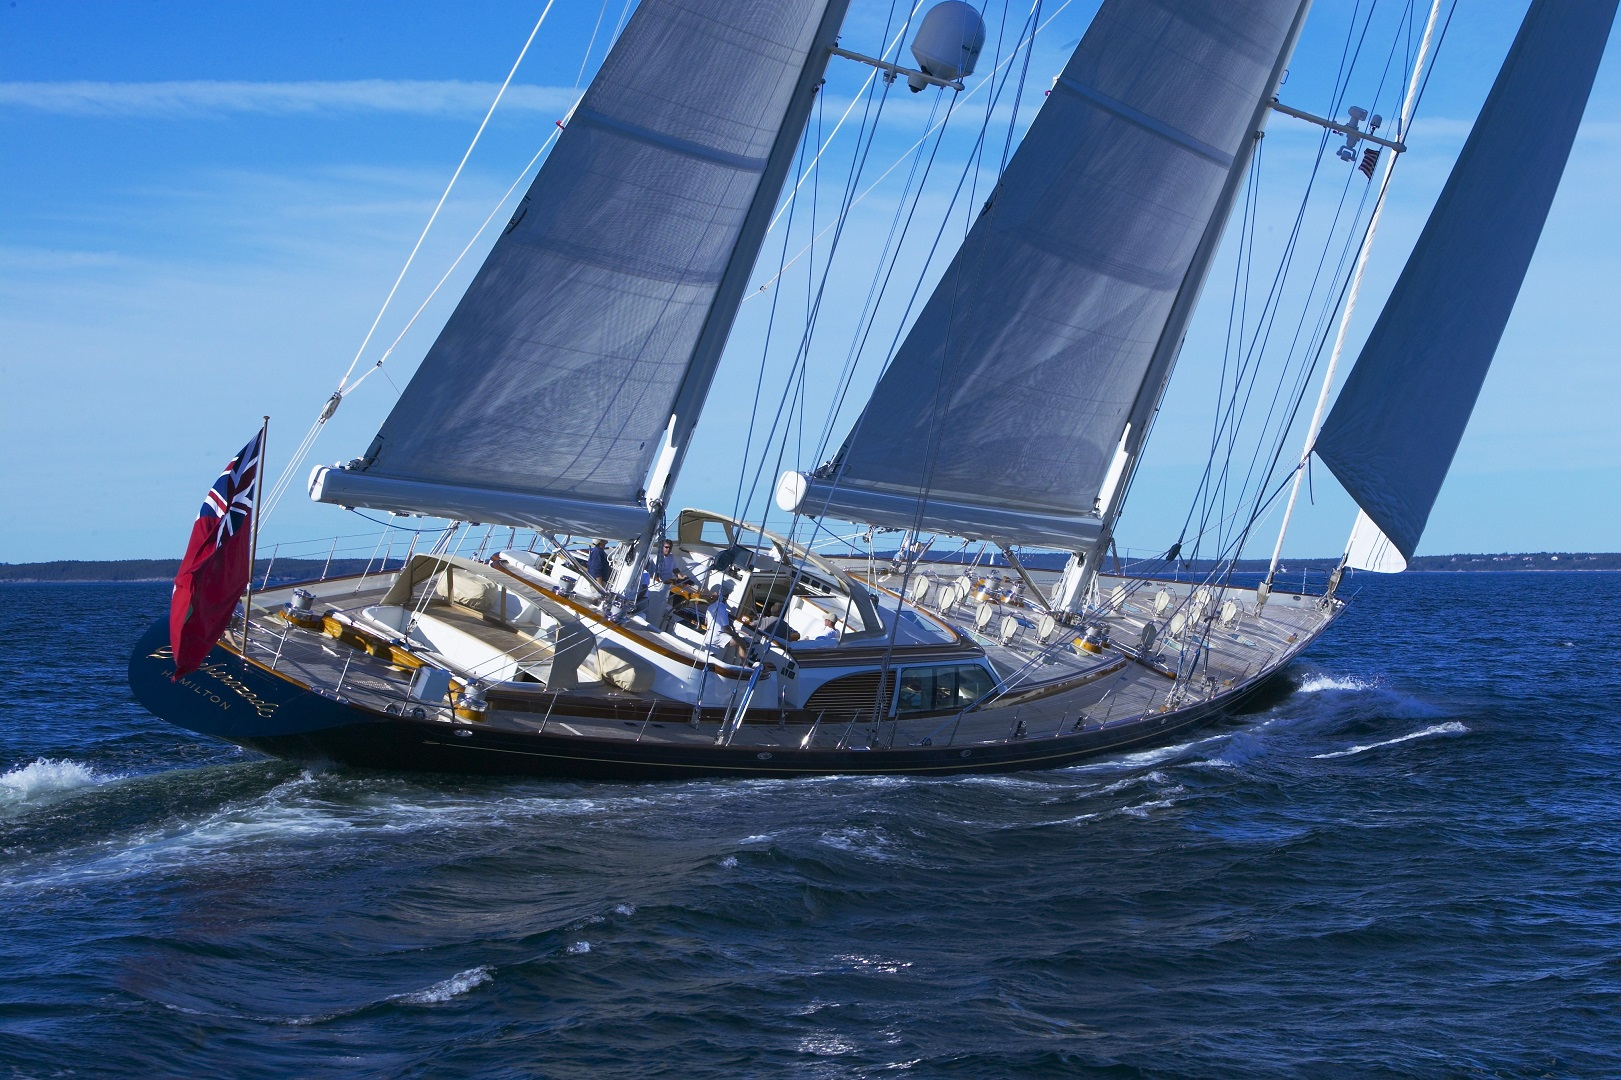 sailing yacht asolare used in film runner runner (starring justin timberlake and ben affleck)